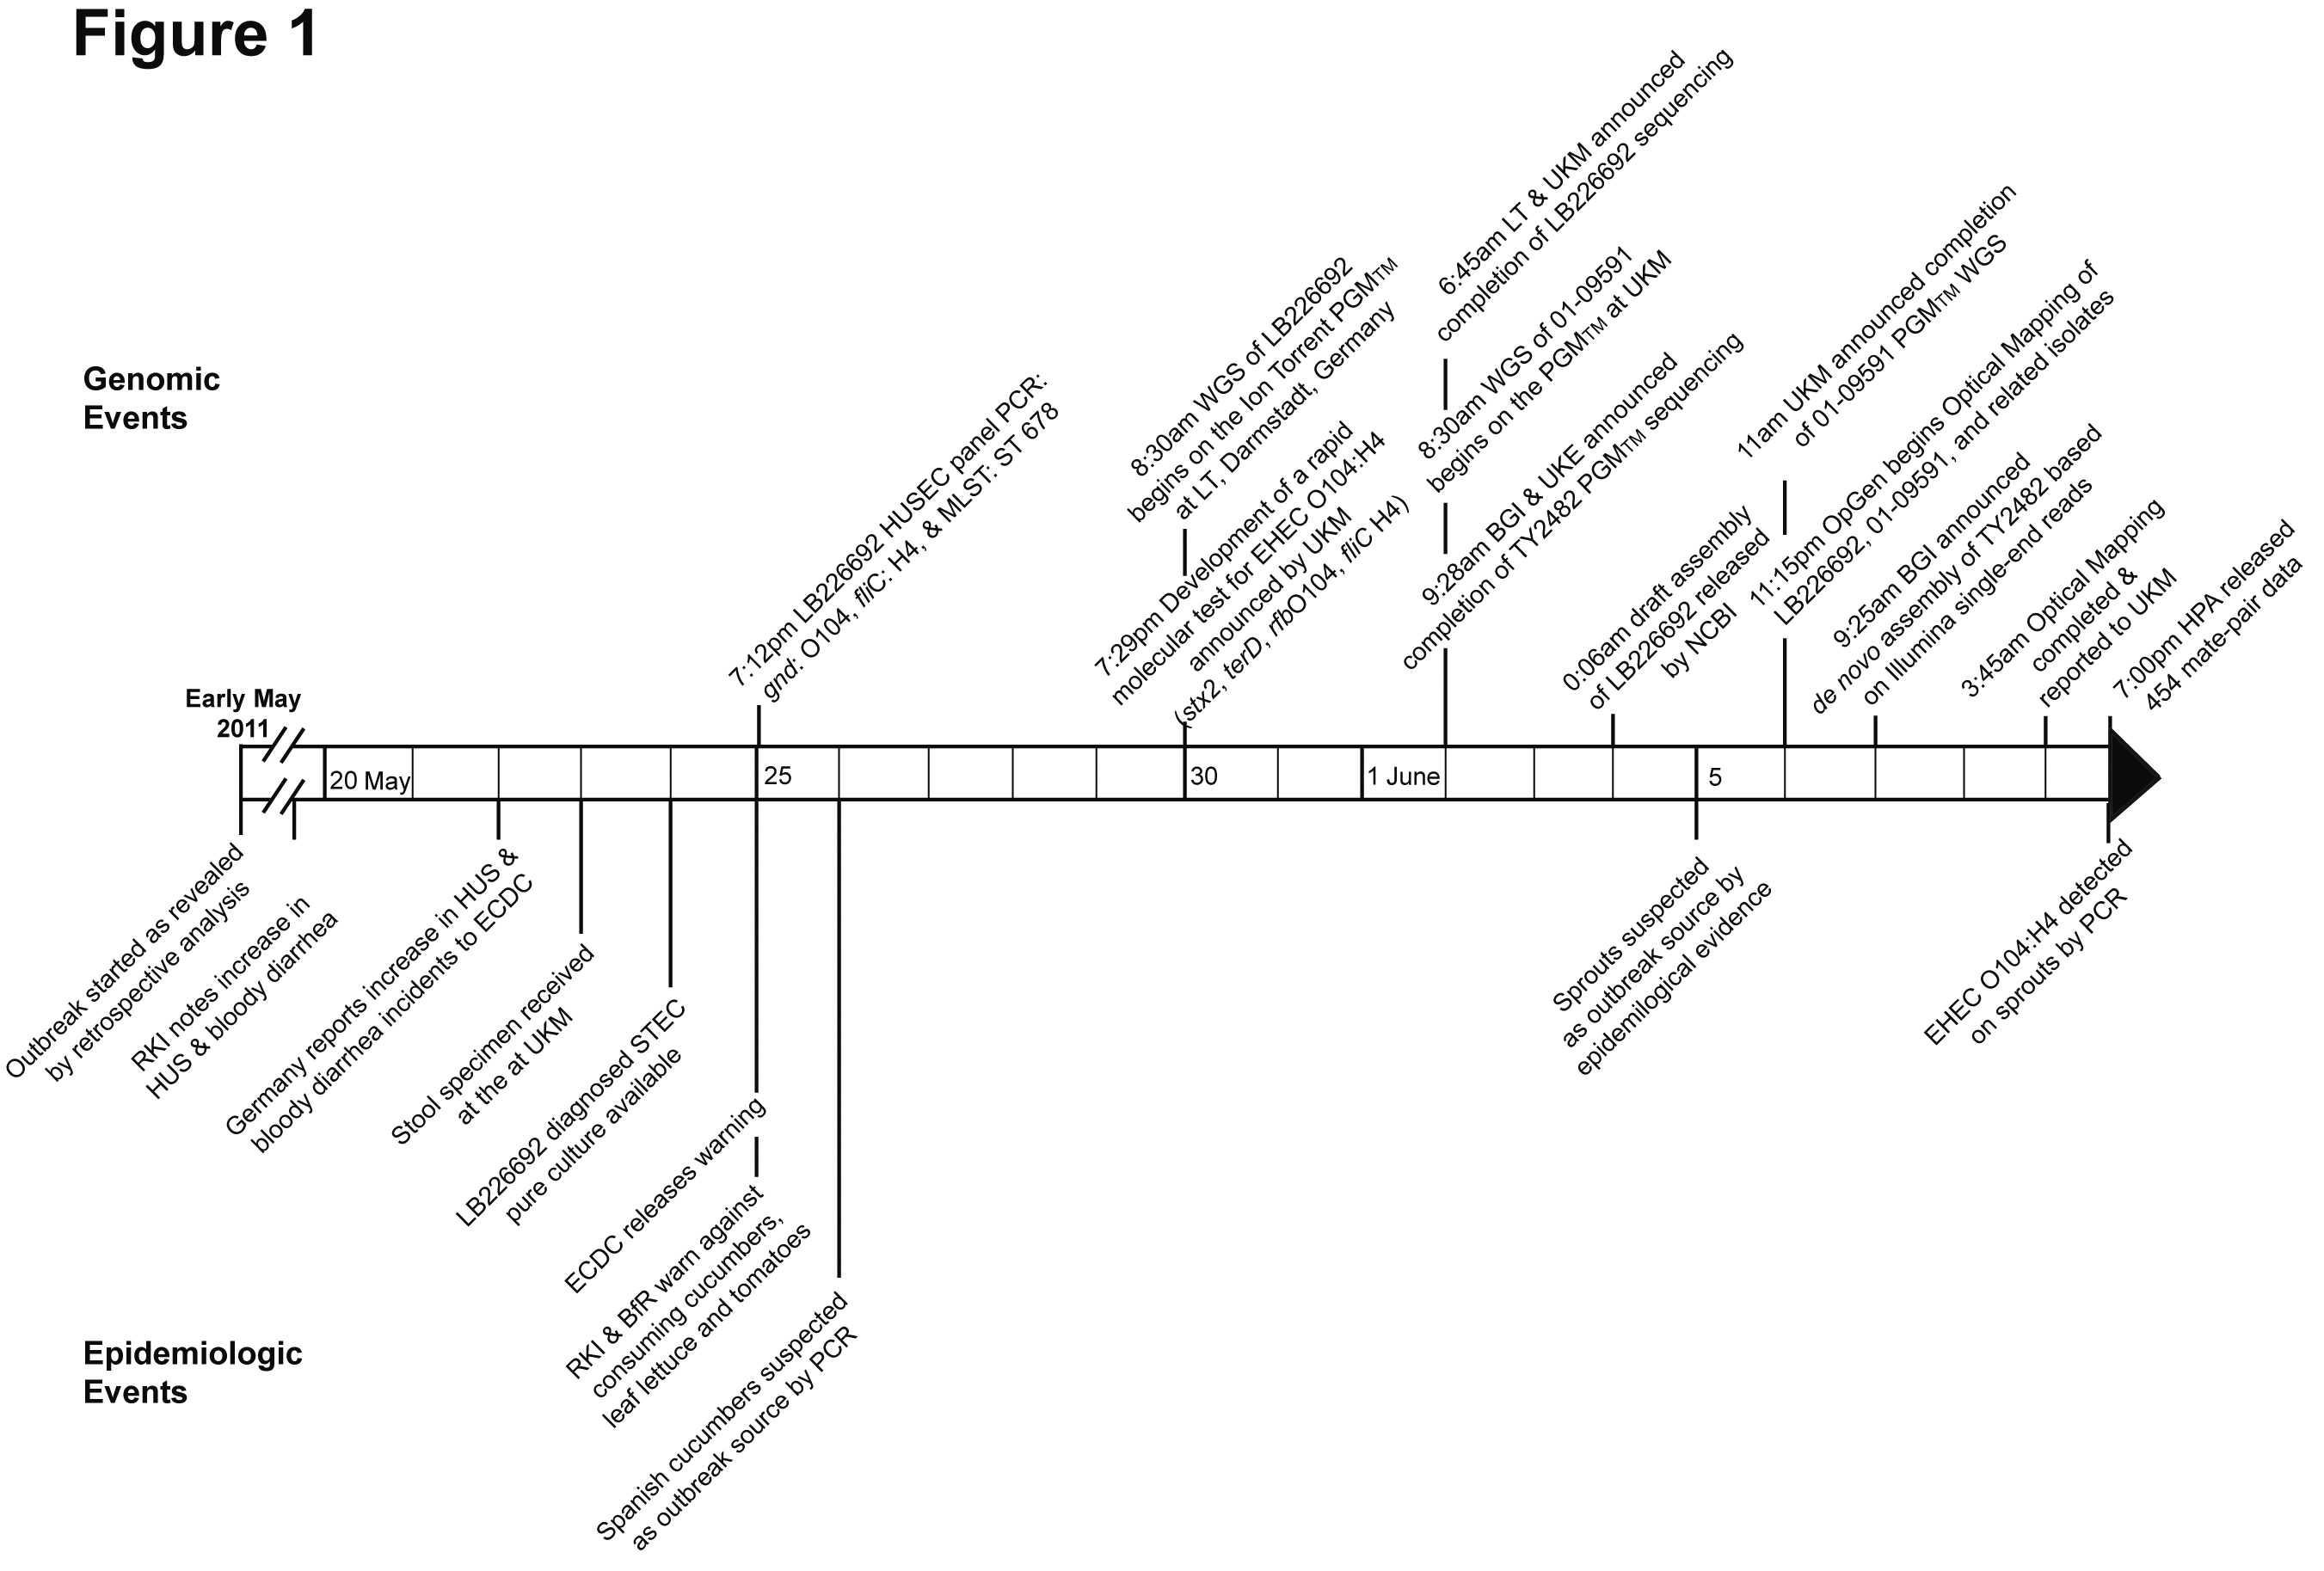 idw - Attachment: Events timeline of German EHEC O104:H4 outbreak